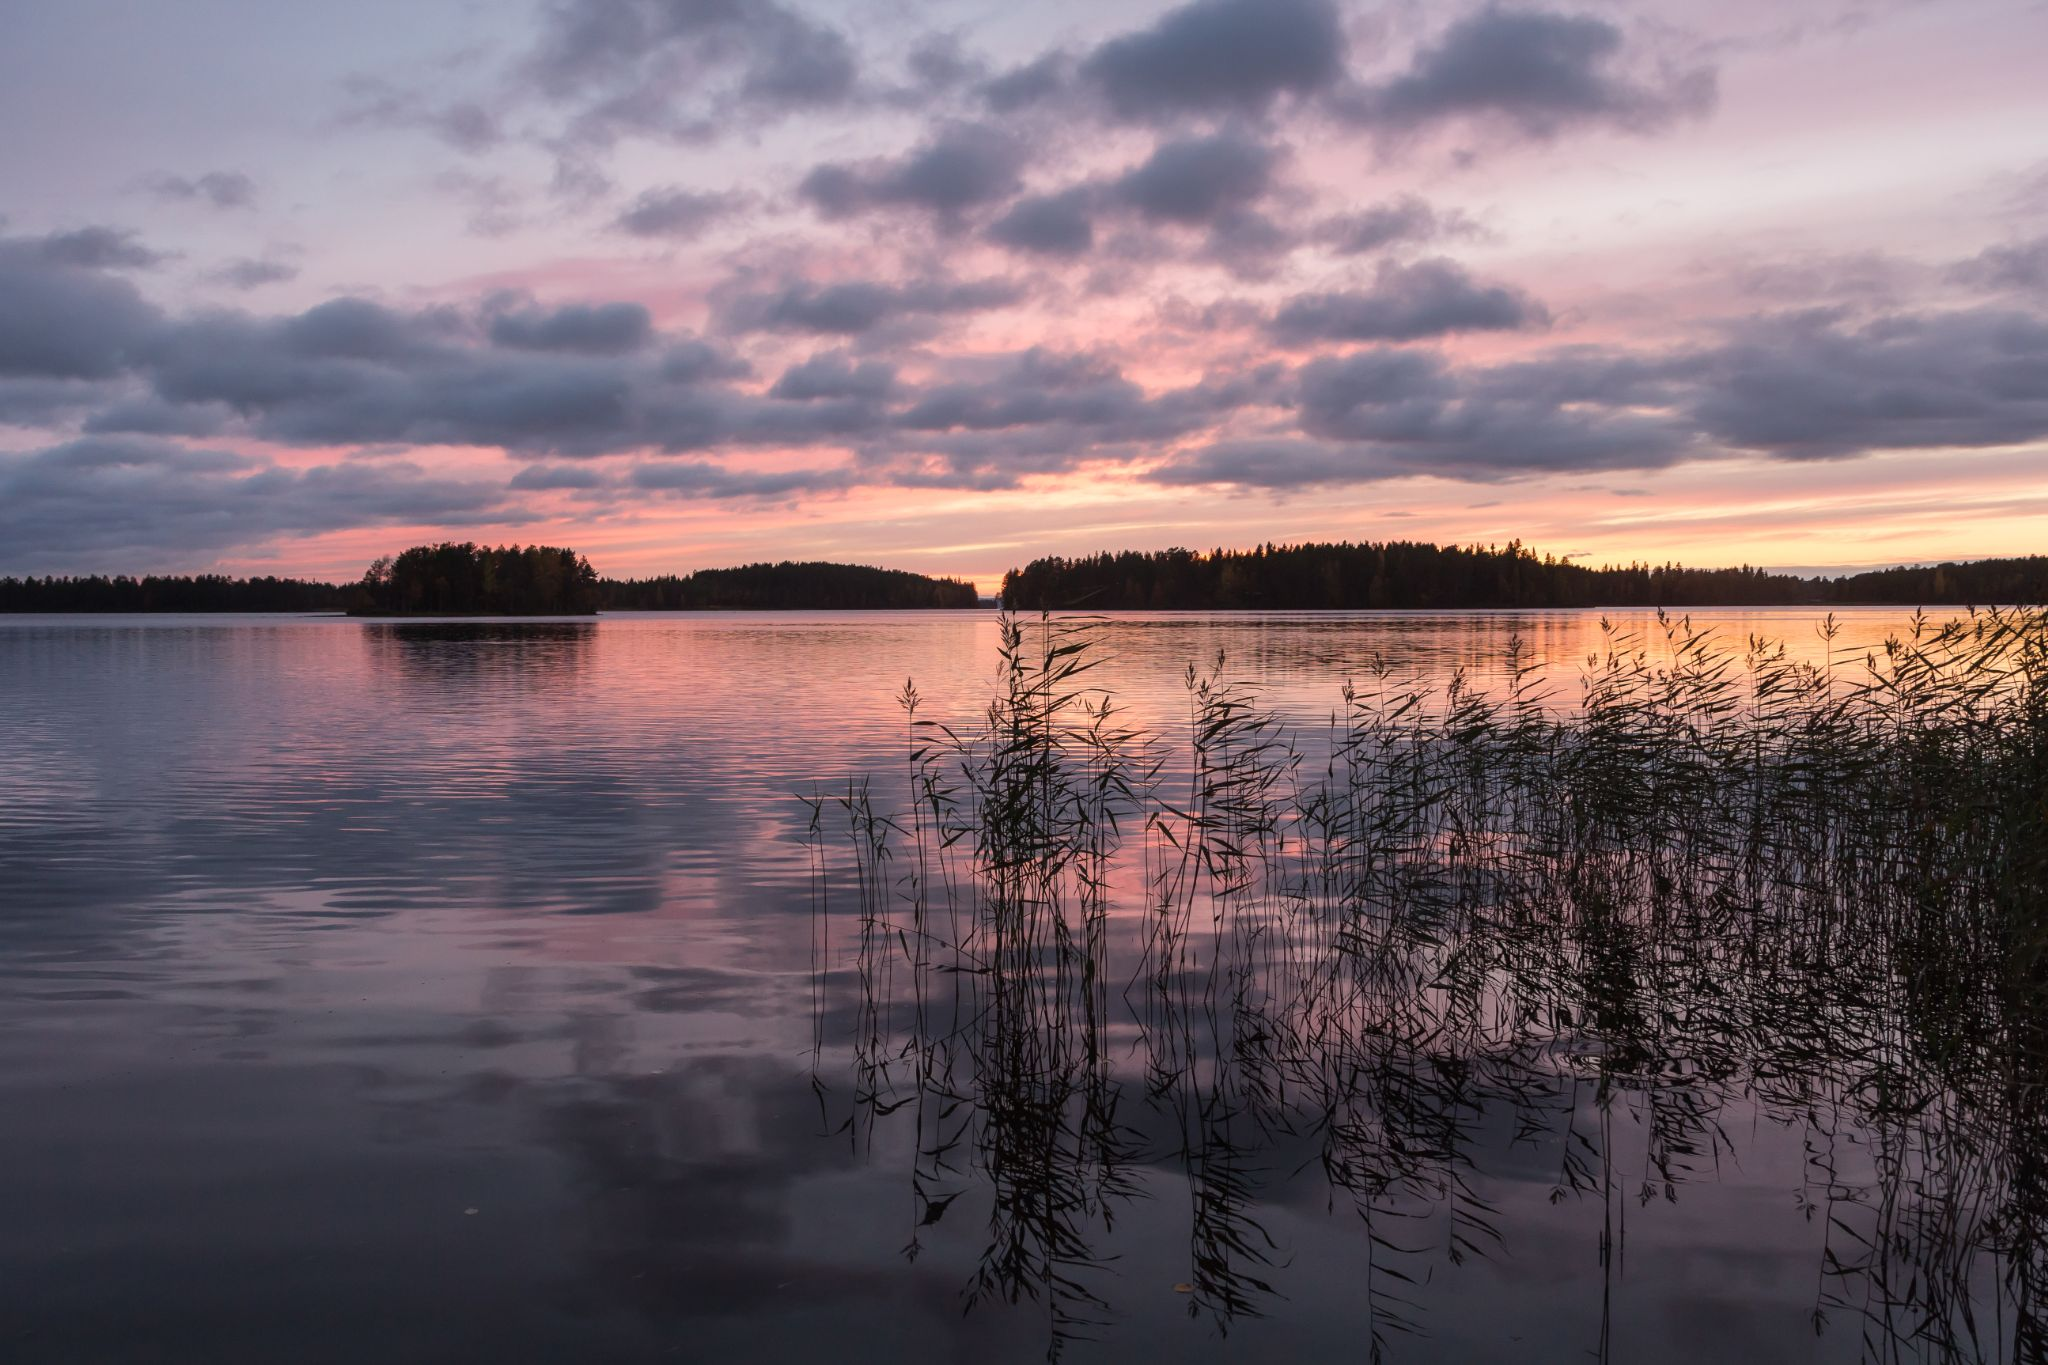 After sunset by Anne Talvensaari